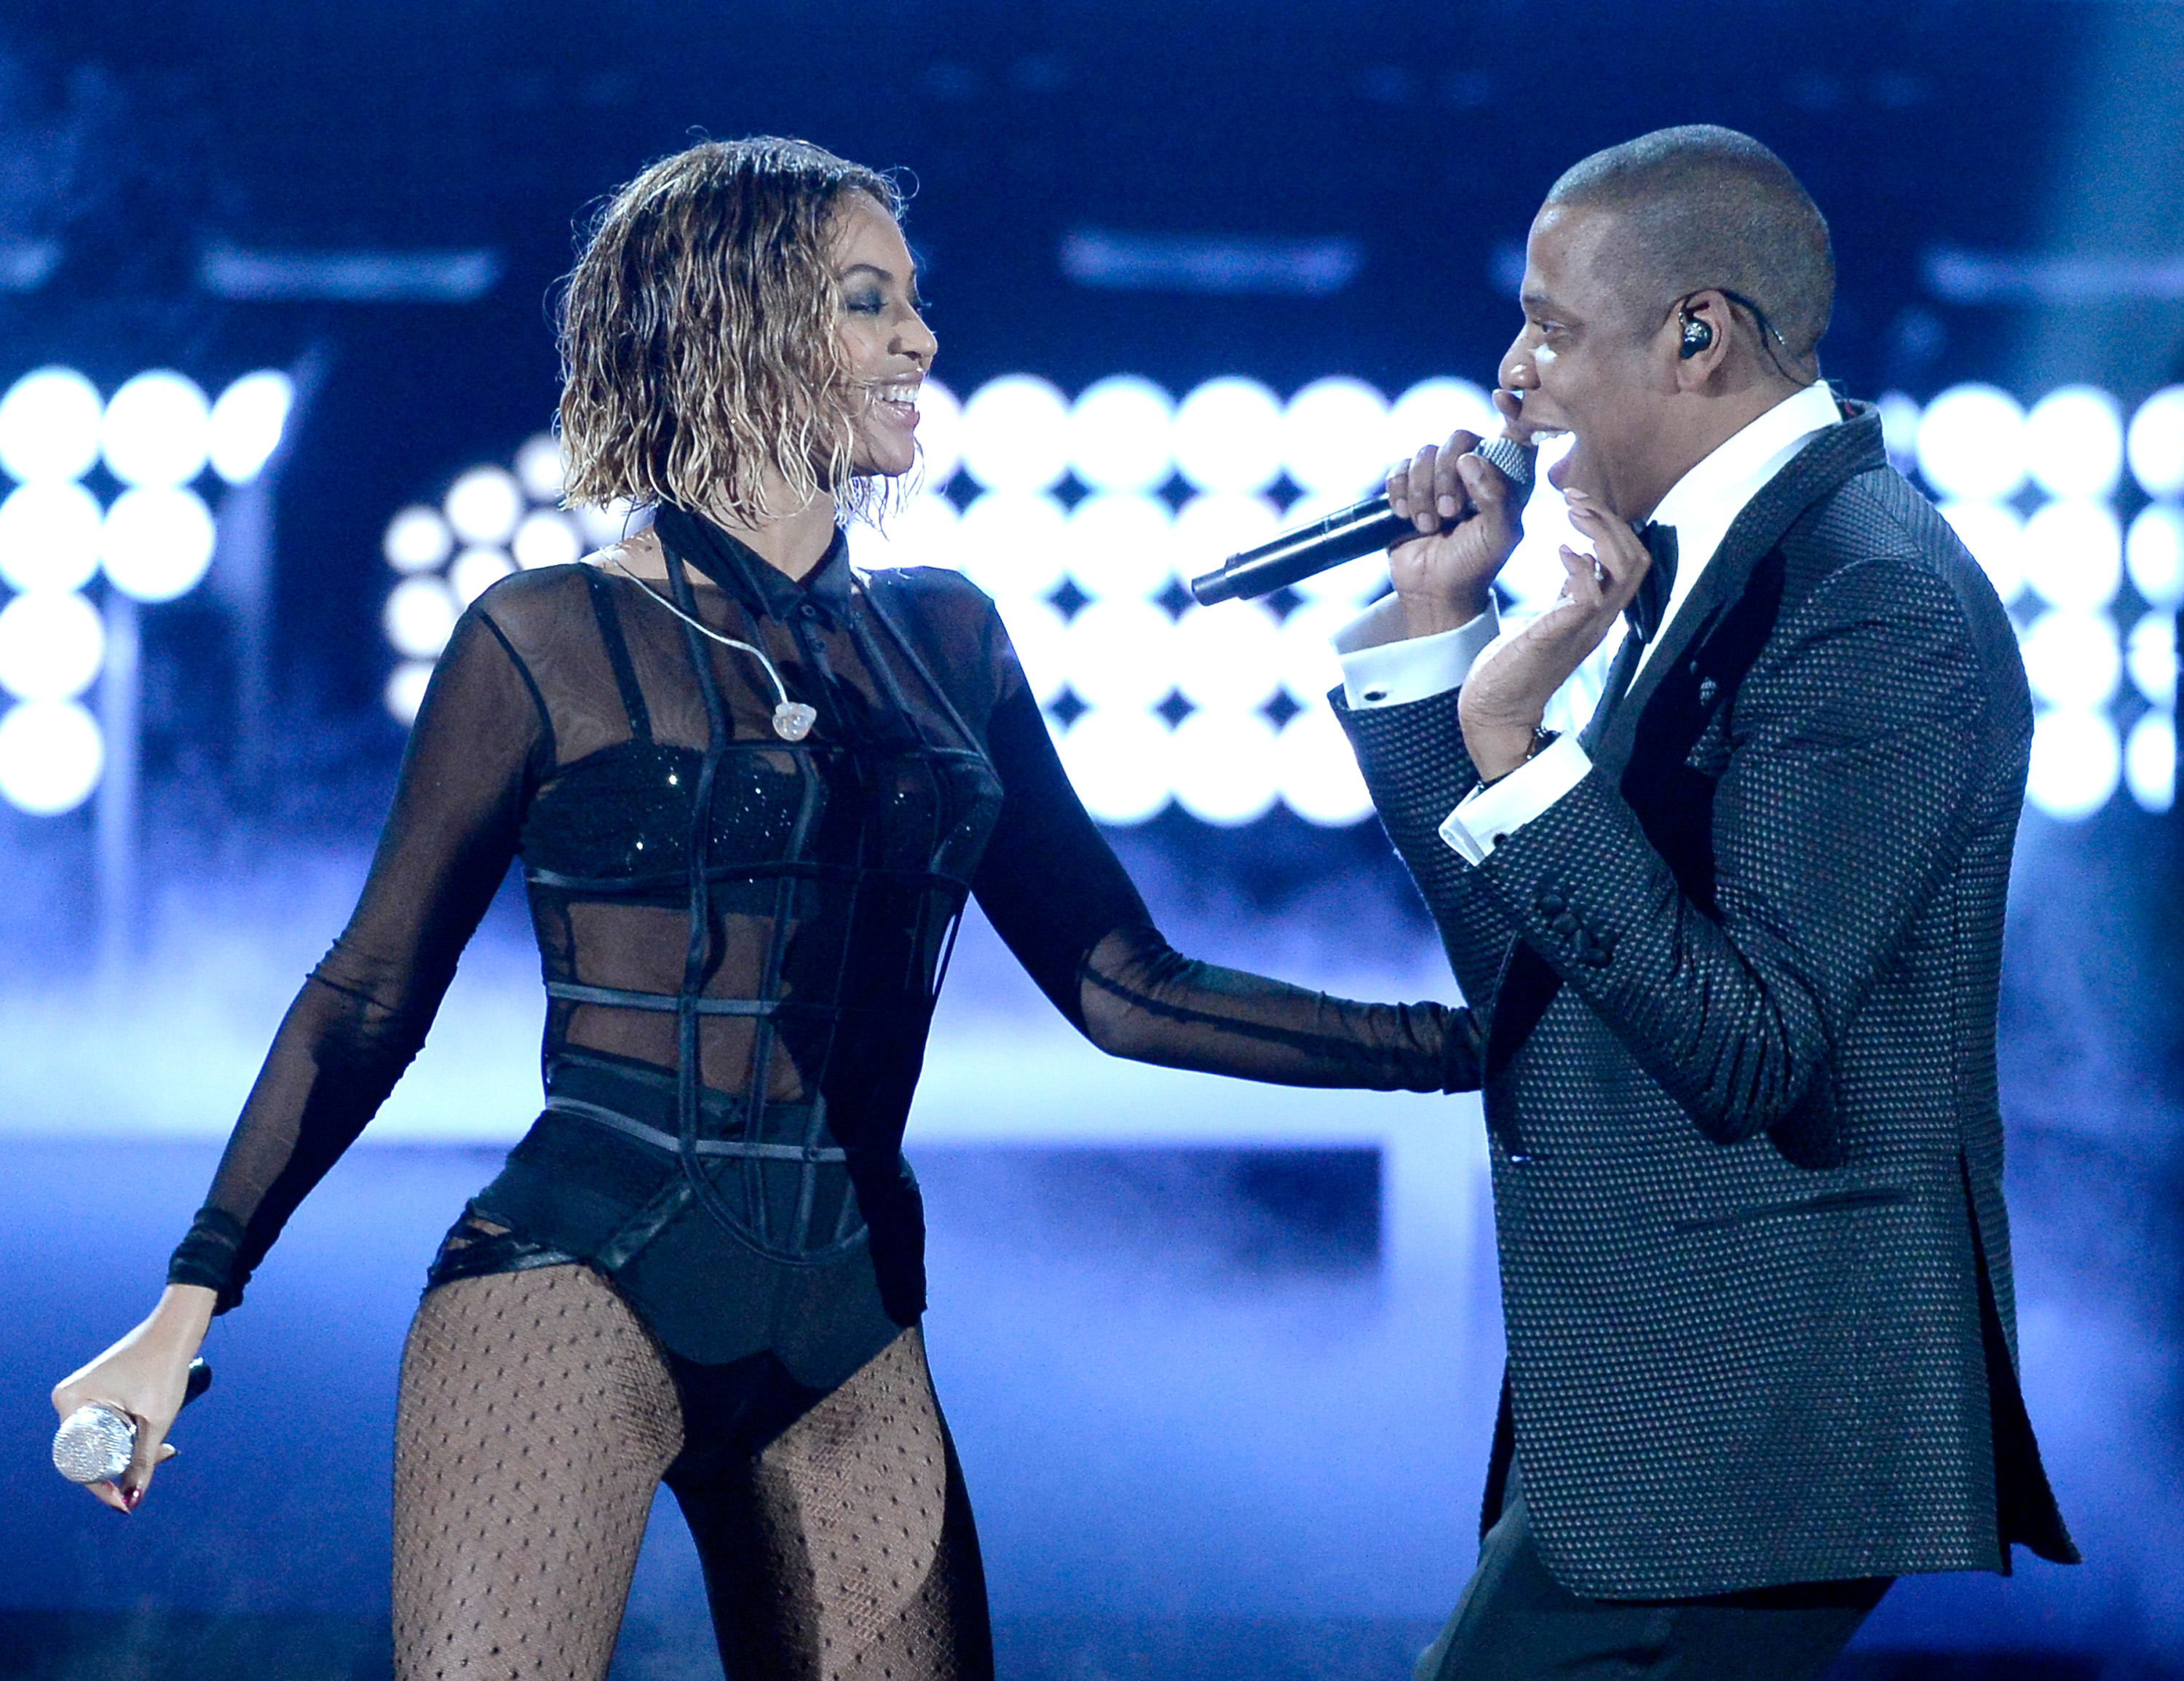 LOS ANGELES, CA - JANUARY 26:  Singer Beyonce and rapper Jay Z perform onstage during the 56th GRAMMY Awards at Staples Center on January 26, 2014 in Los Angeles, California.  (Photo by Kevork Djansezian/Getty Images)